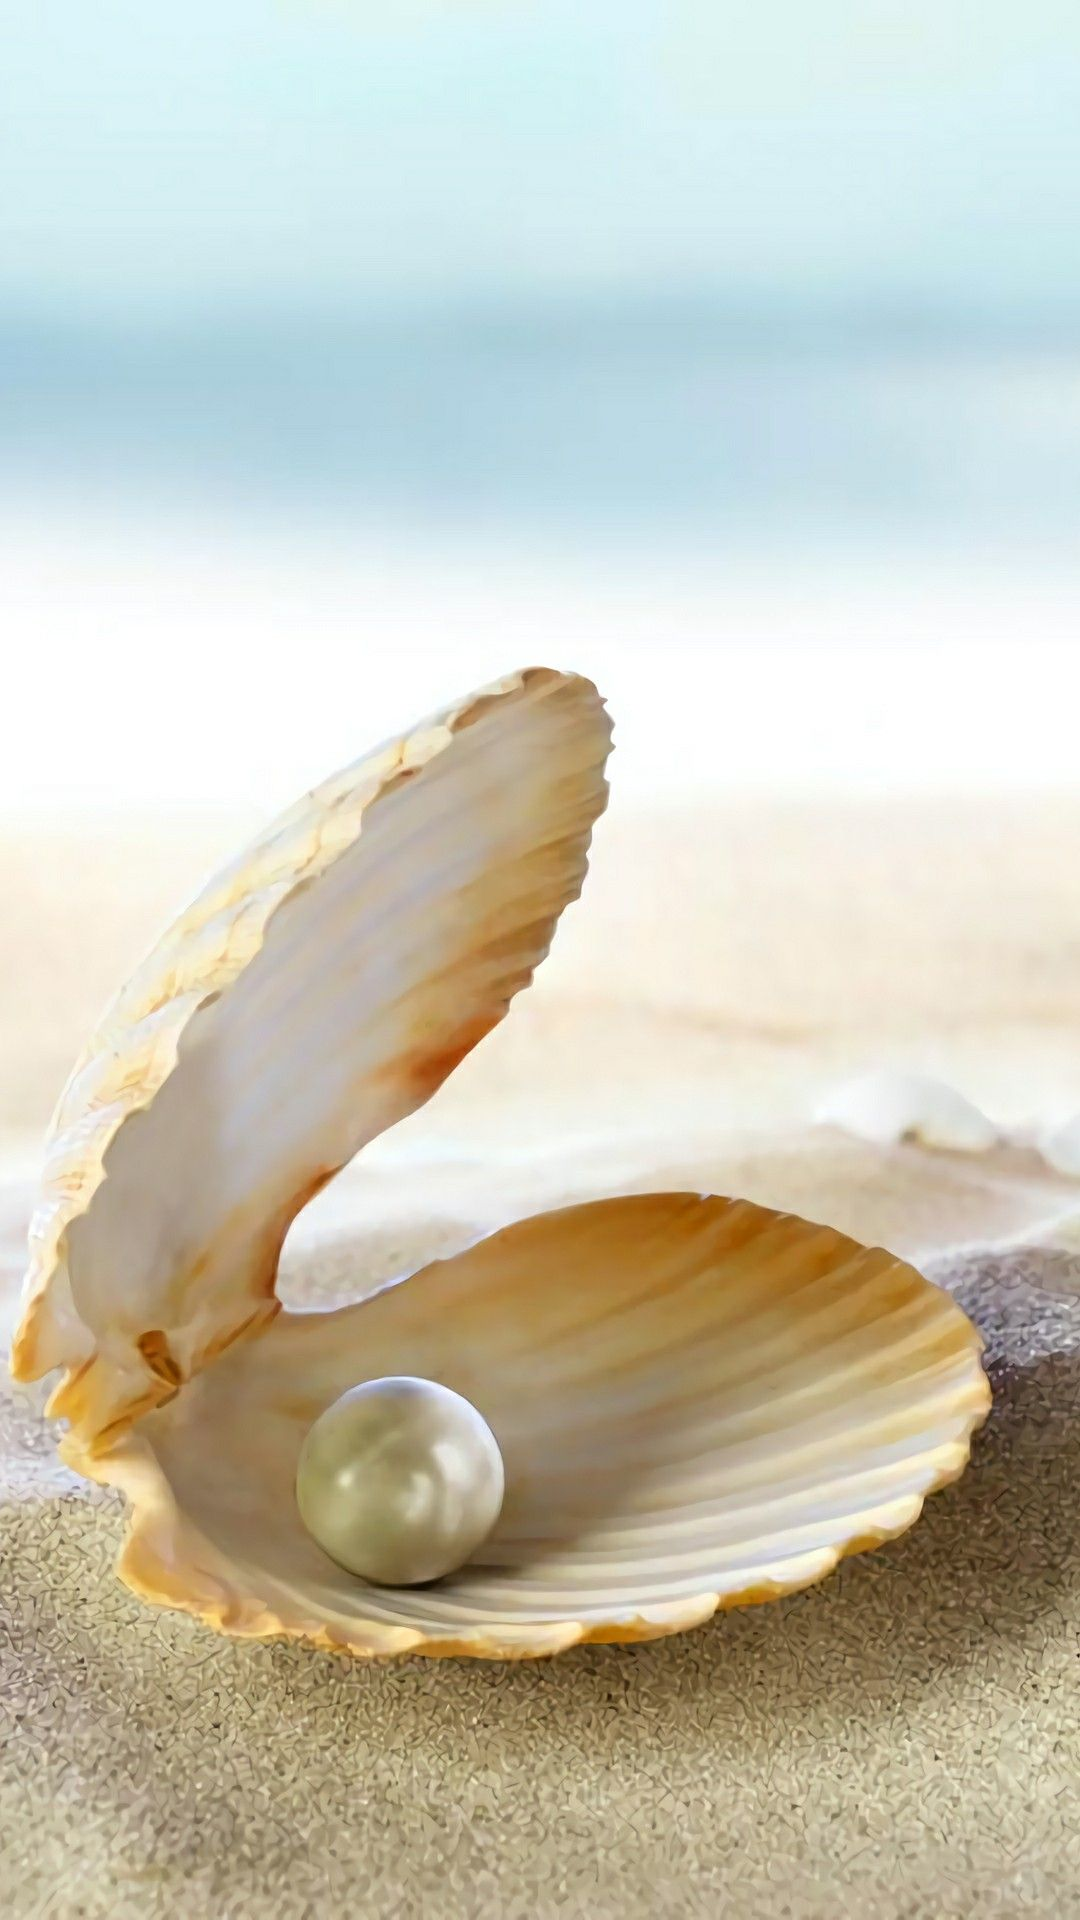 Pin By Marcelomartinezrg On Dream Body Pearl Paint Clams Clam Pearl